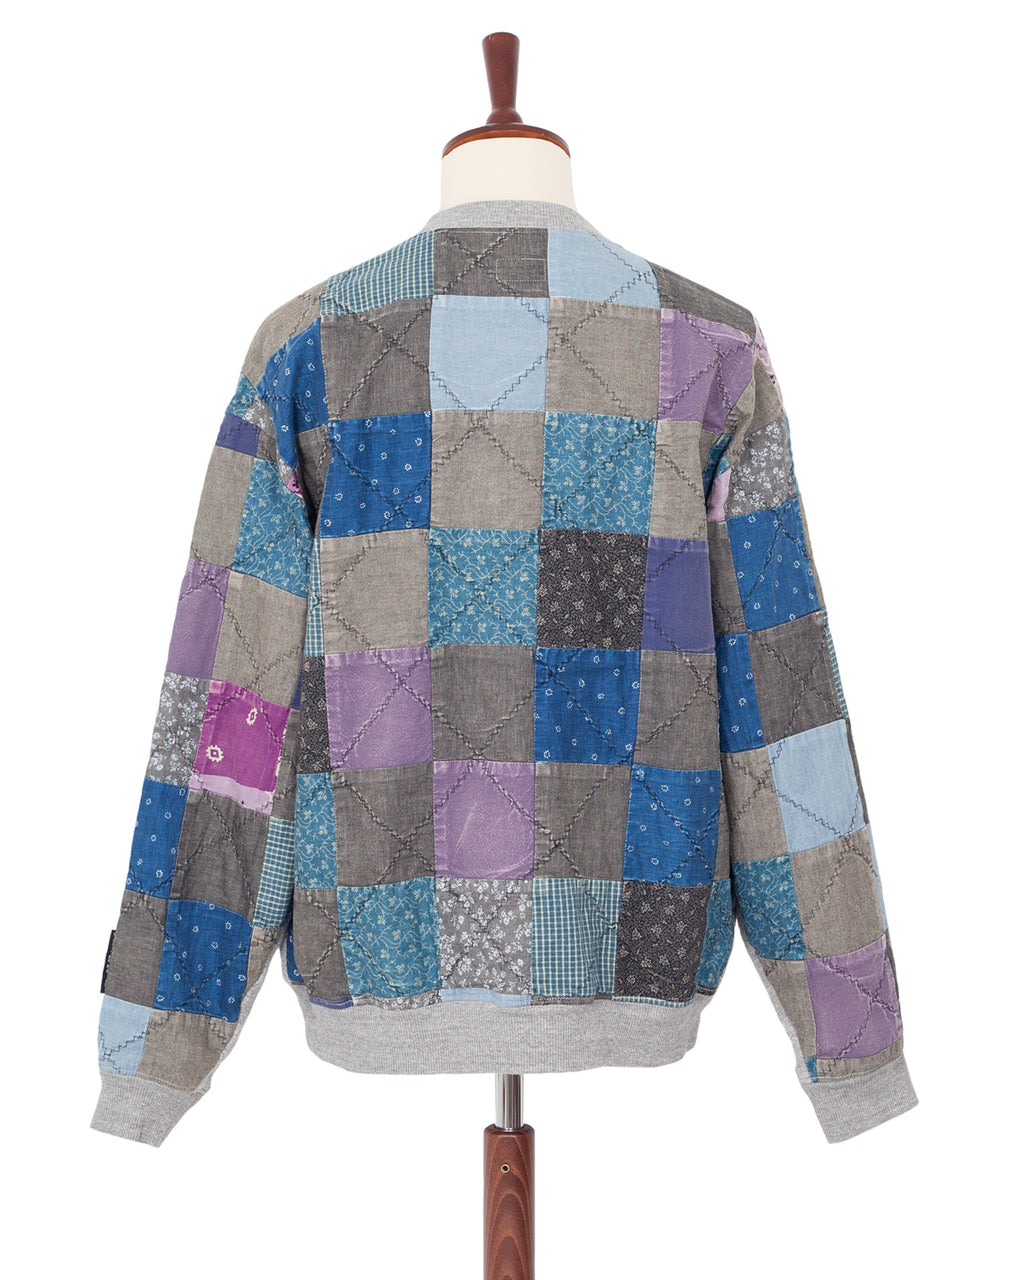 Kapital Fleece Knit x Quilt Big Sweater